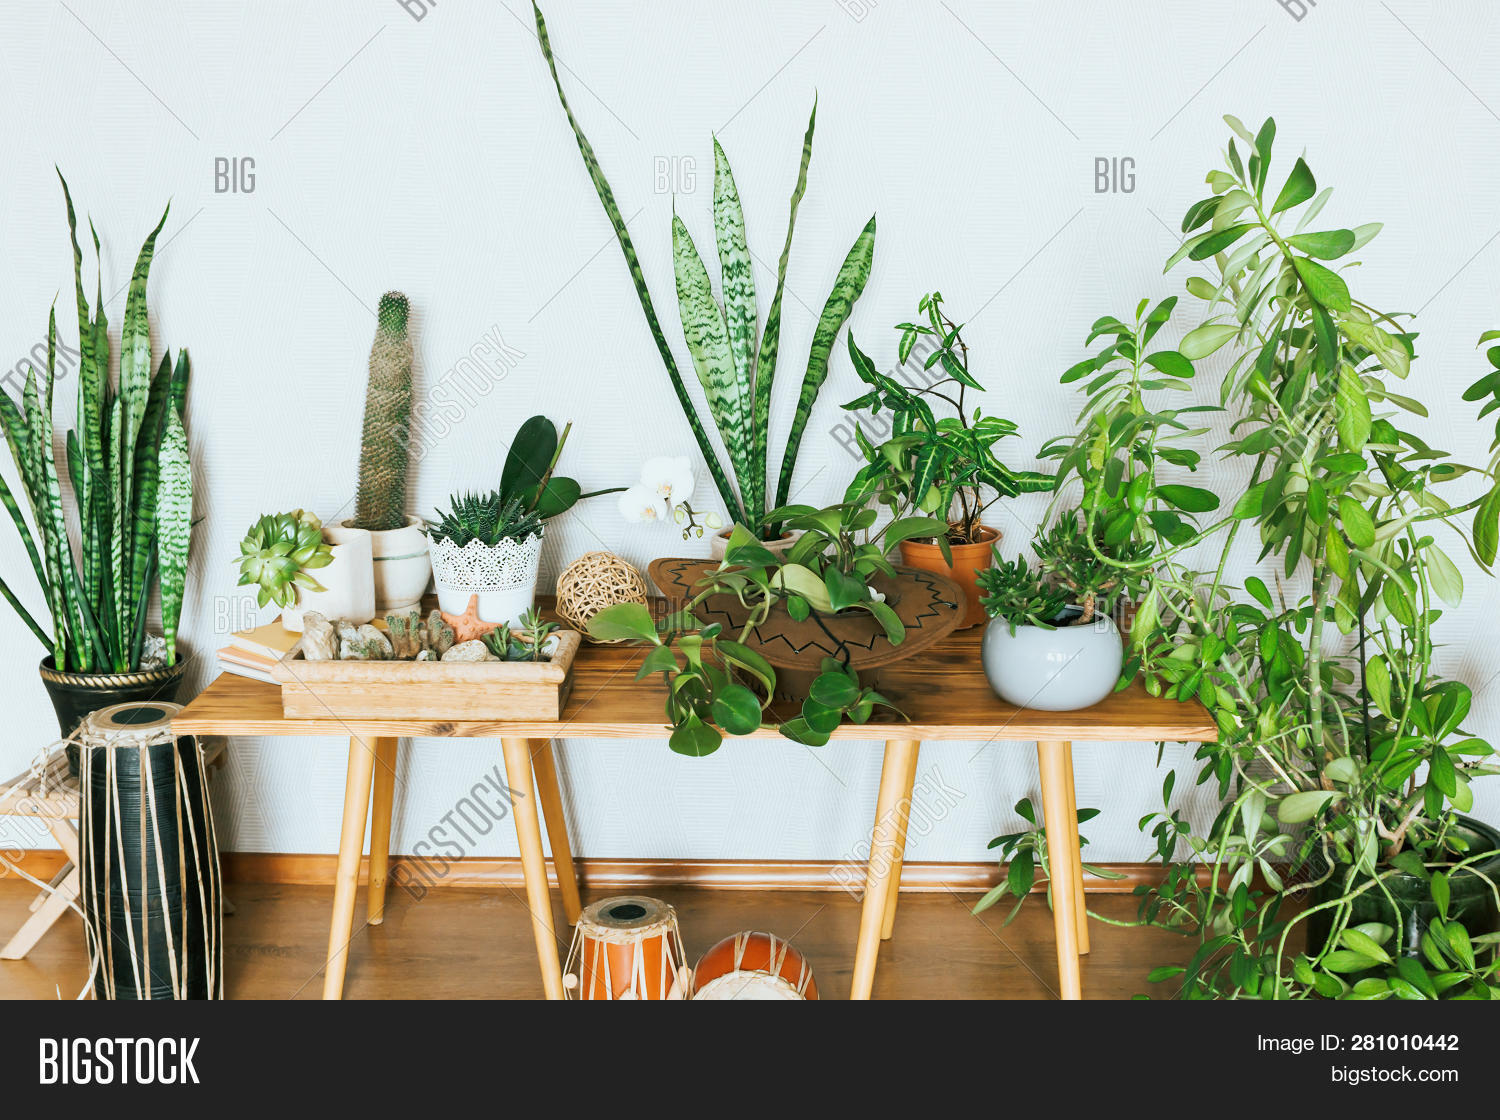 apartment,background,beautiful,botanical,botany,cacti,cactus,cozy,decor,decoration,design,flora,flower,fresh,furniture,garden,green,home,house,houseplant,indoor,interior,leaf,living,modern,natural,nature,plant,pot,room,scandinavian,shelf,space,style,succulent,table,tropical,wall,white